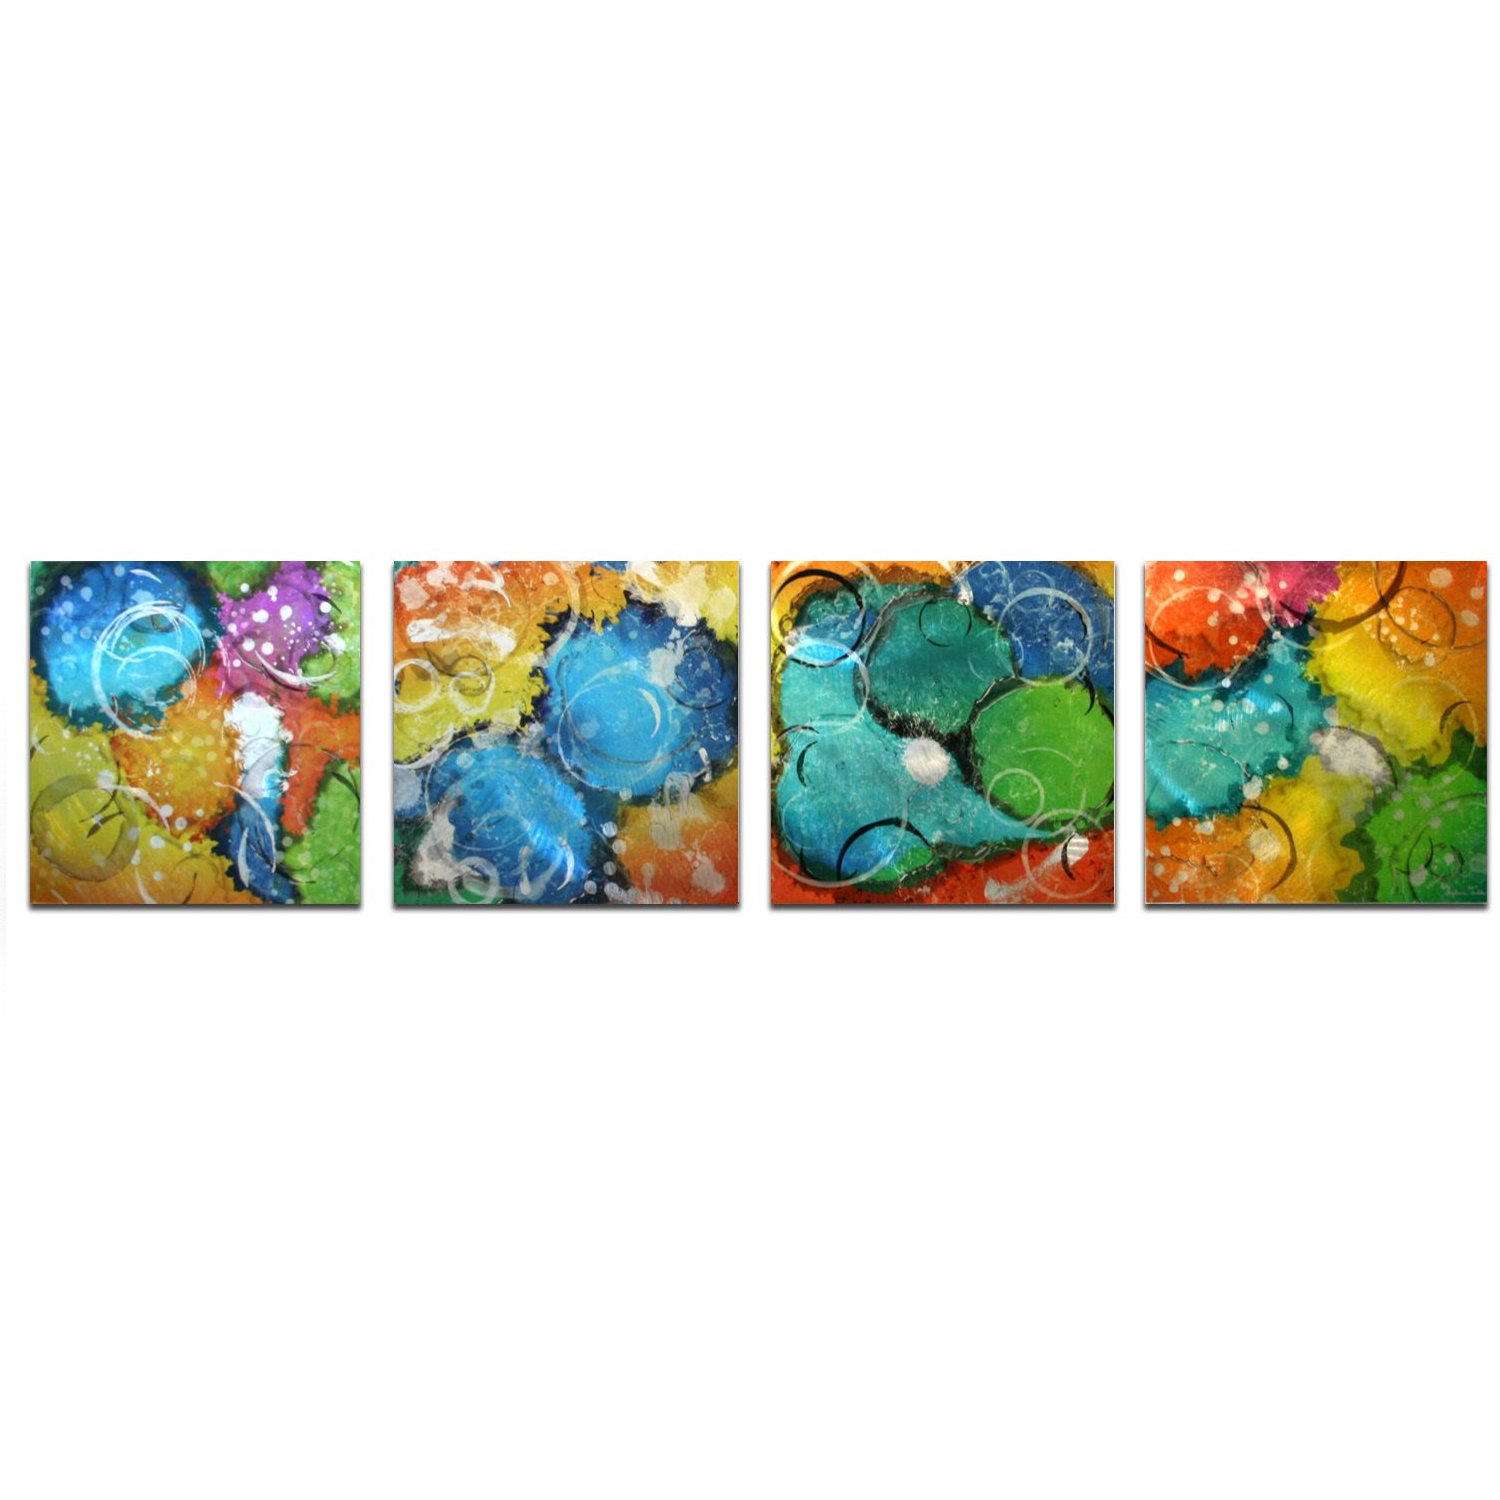 Yellow, Blue, Green, Orange Abstract Art 'Sunny Days' - 52x12 in. - 4-Panels w/ Unique Color Scheme - Blue Wall Decor - Contemporary Artwork 51f76602b1f9647436000158